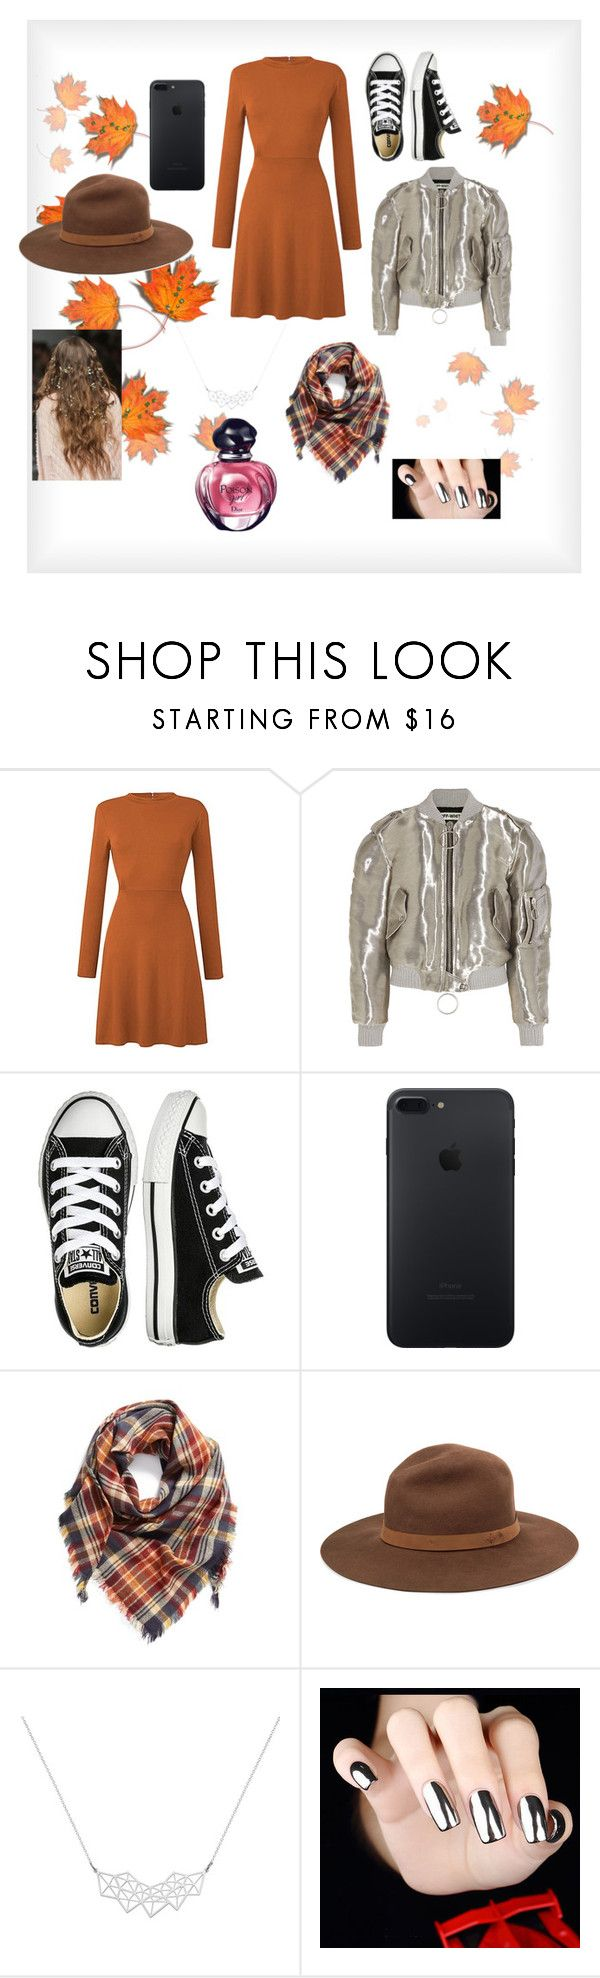 """""""Untitled #27"""" by directionereden ❤ liked on Polyvore featuring Off-White, Converse, BP., rag & bone, A Weathered Penny and Christian Dior"""